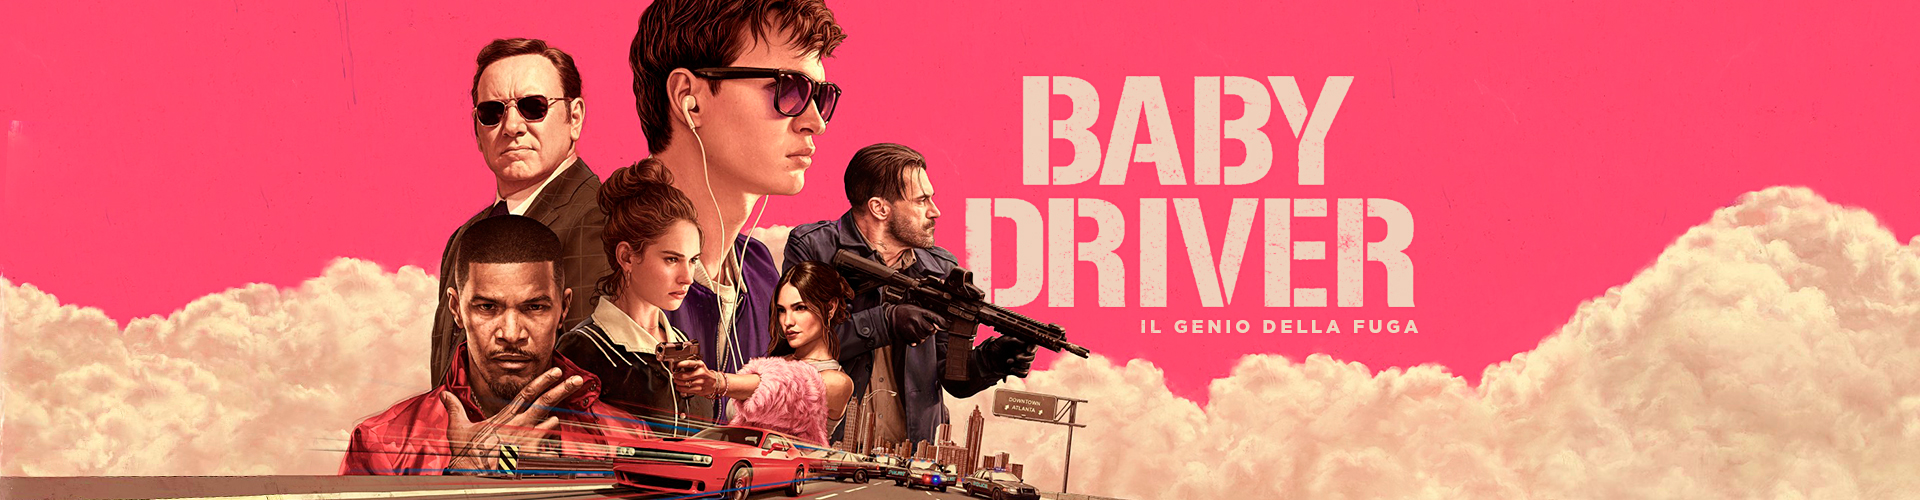 Dvd-it_slider_BabyDriver